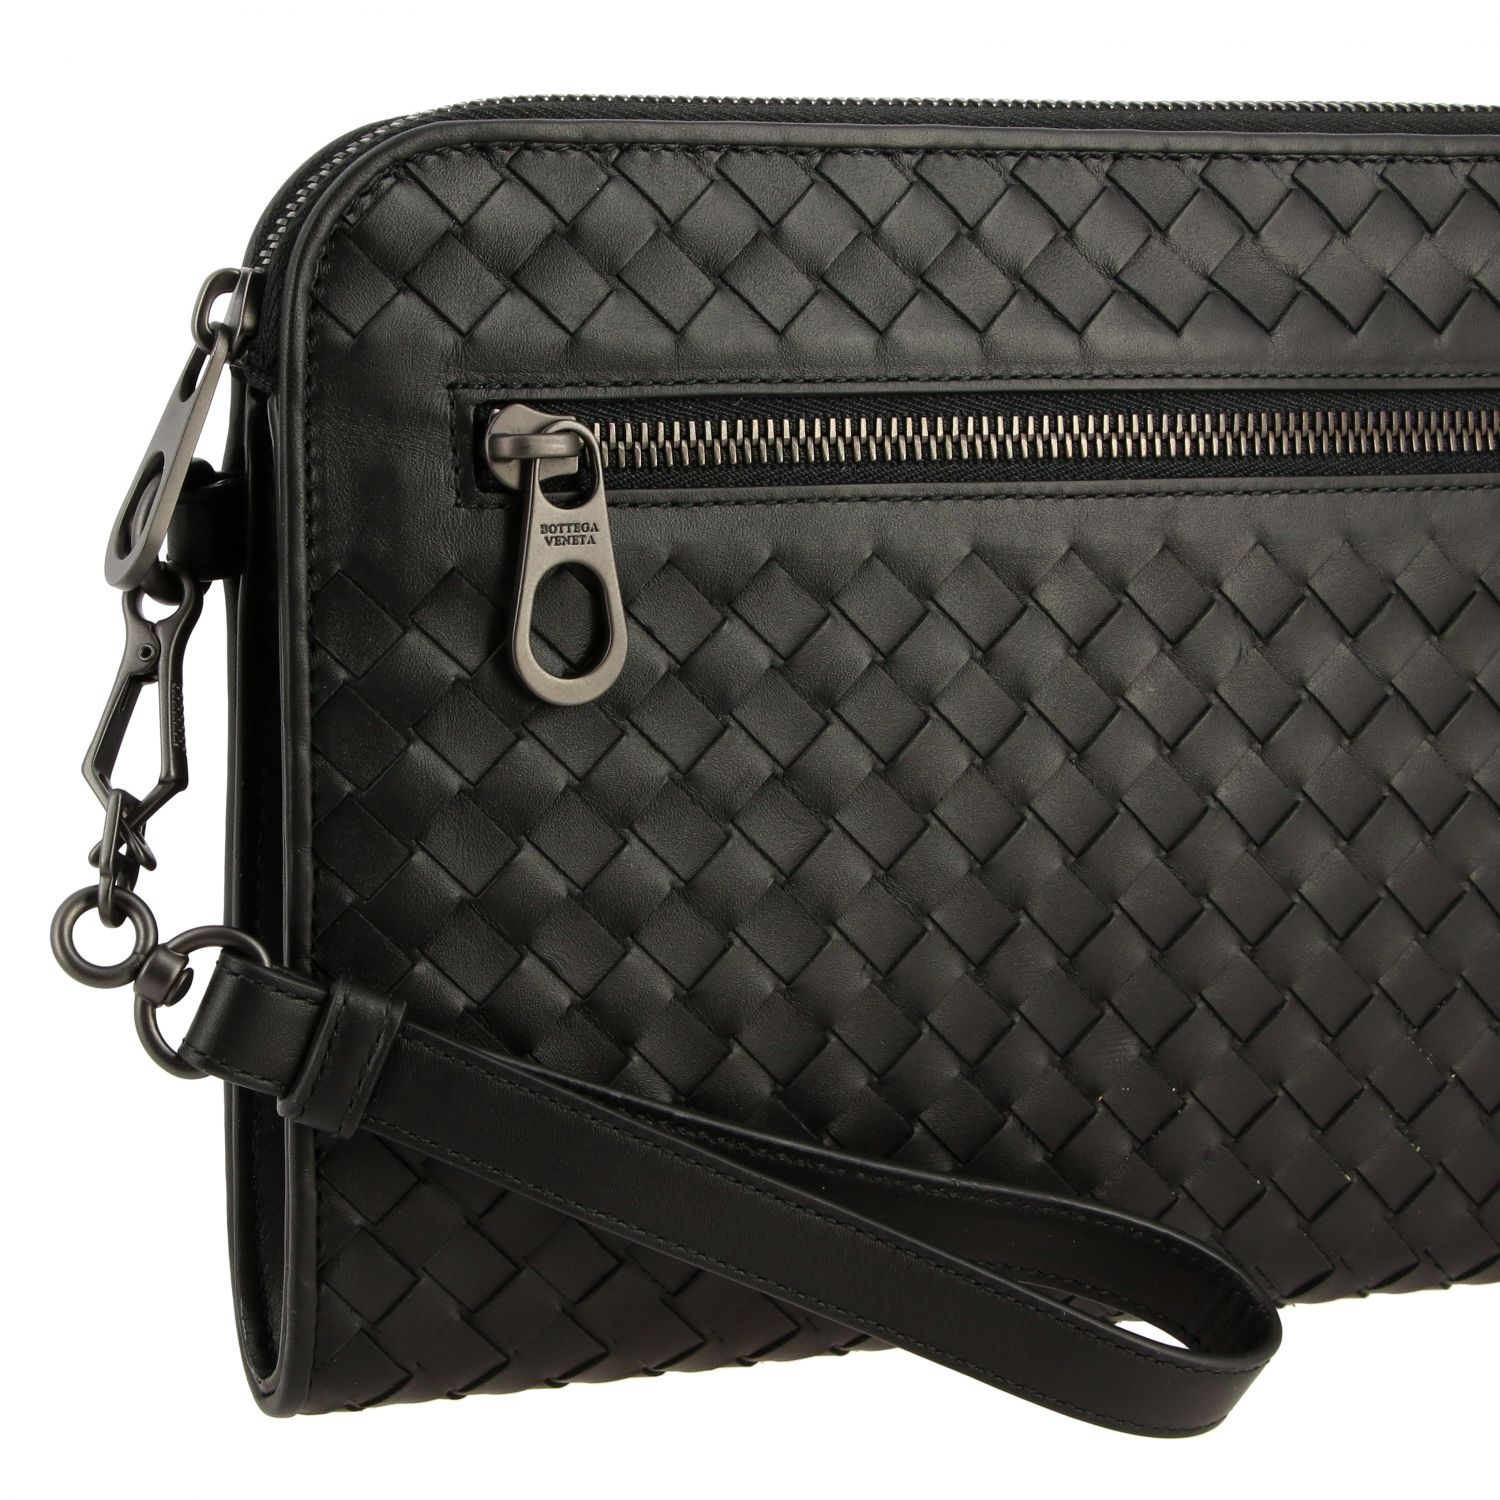 Clutch Bottega Veneta in pelle intrecciata nero 4